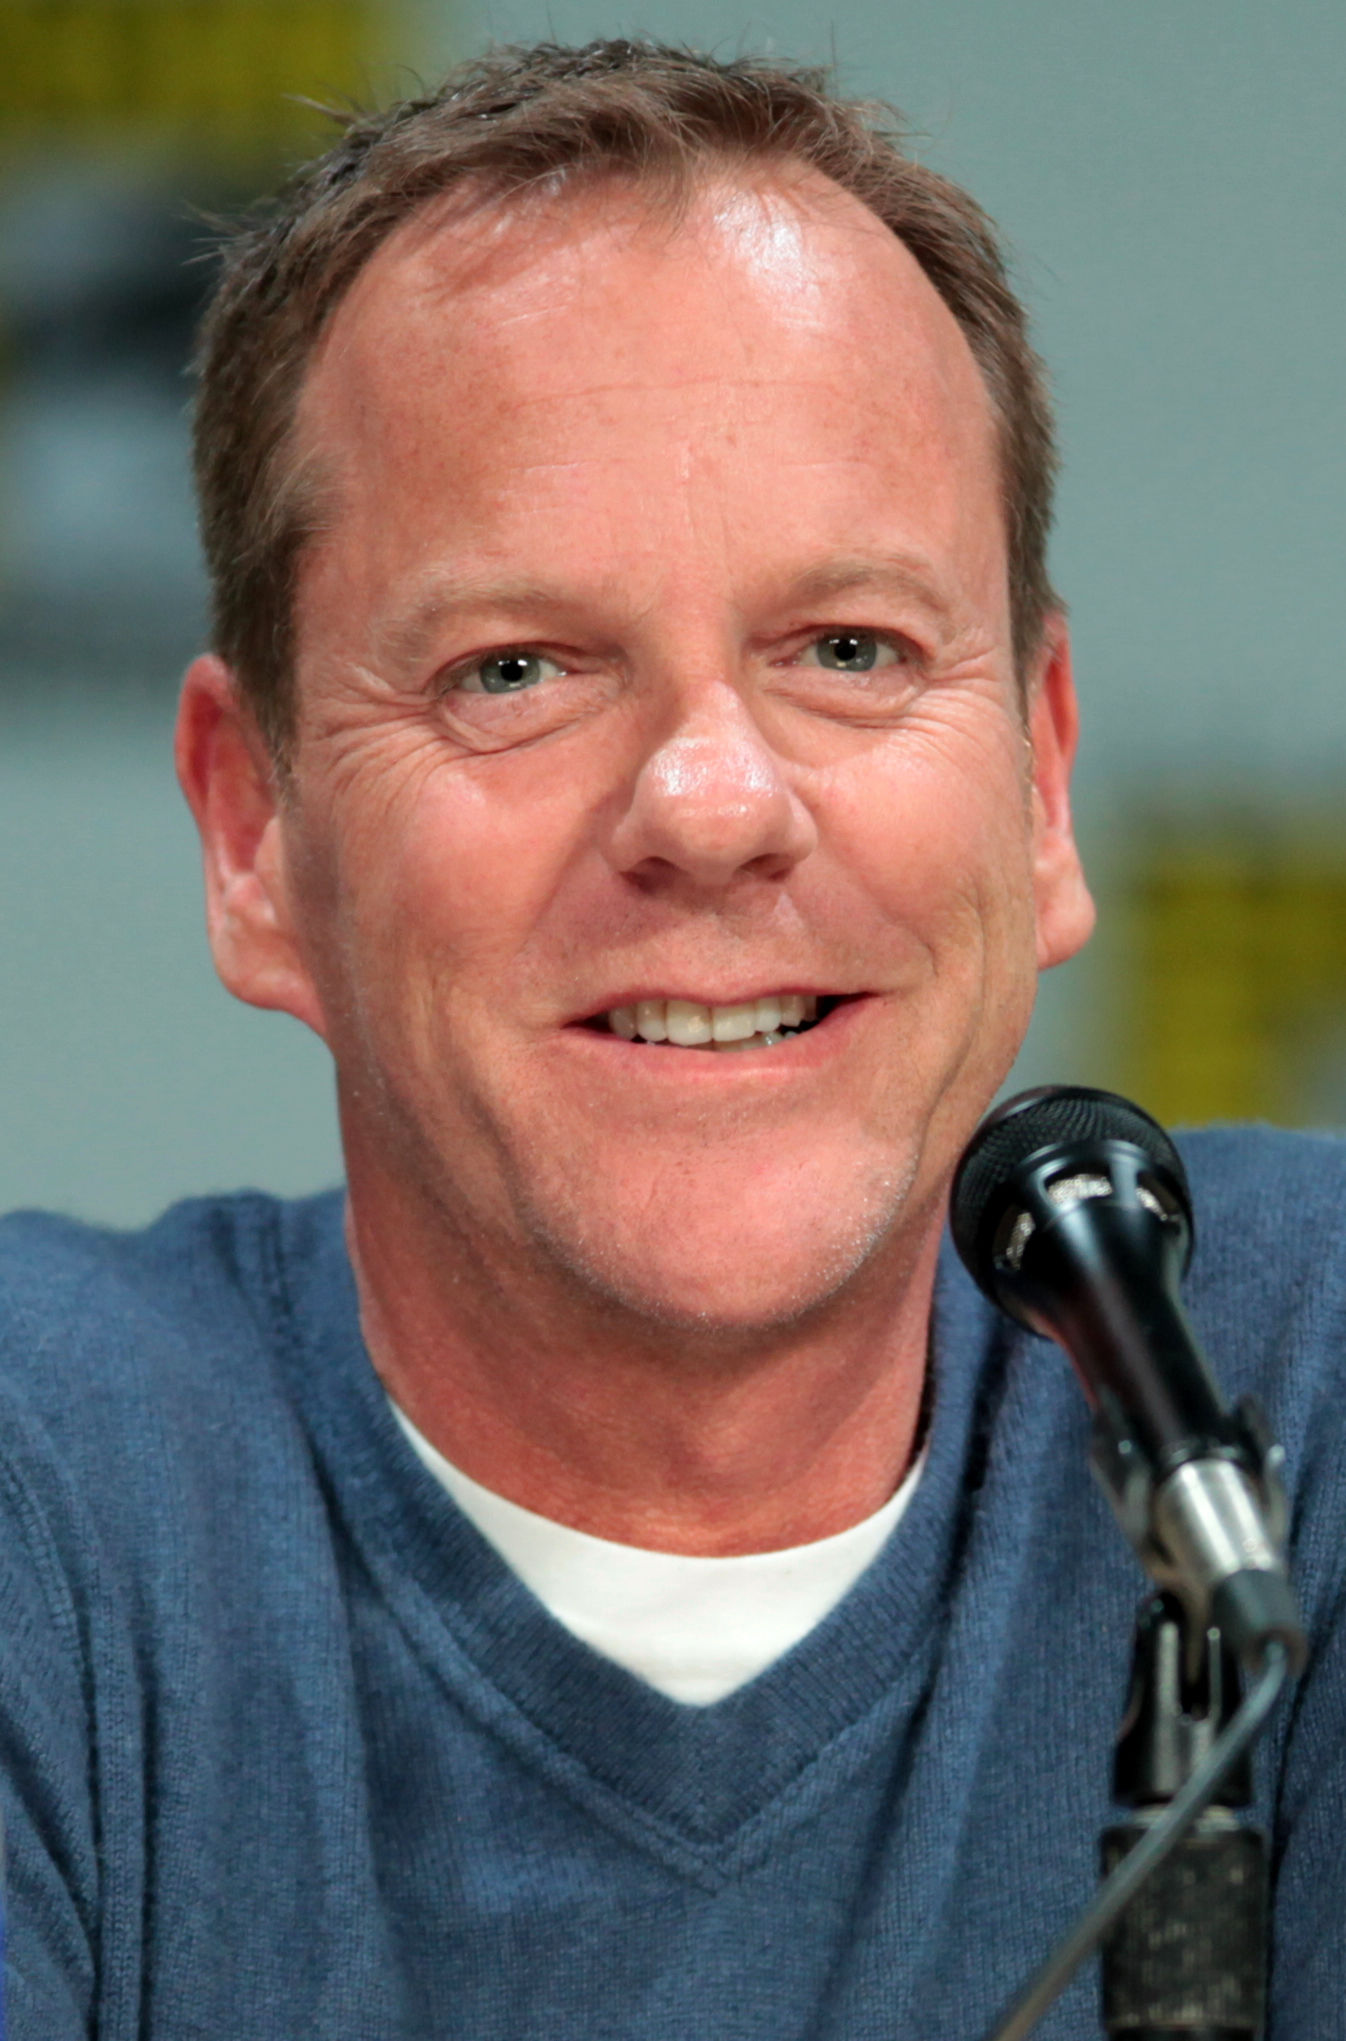 Photo of Kiefer Sutherland: Canadian actor, director, producer, voice actor